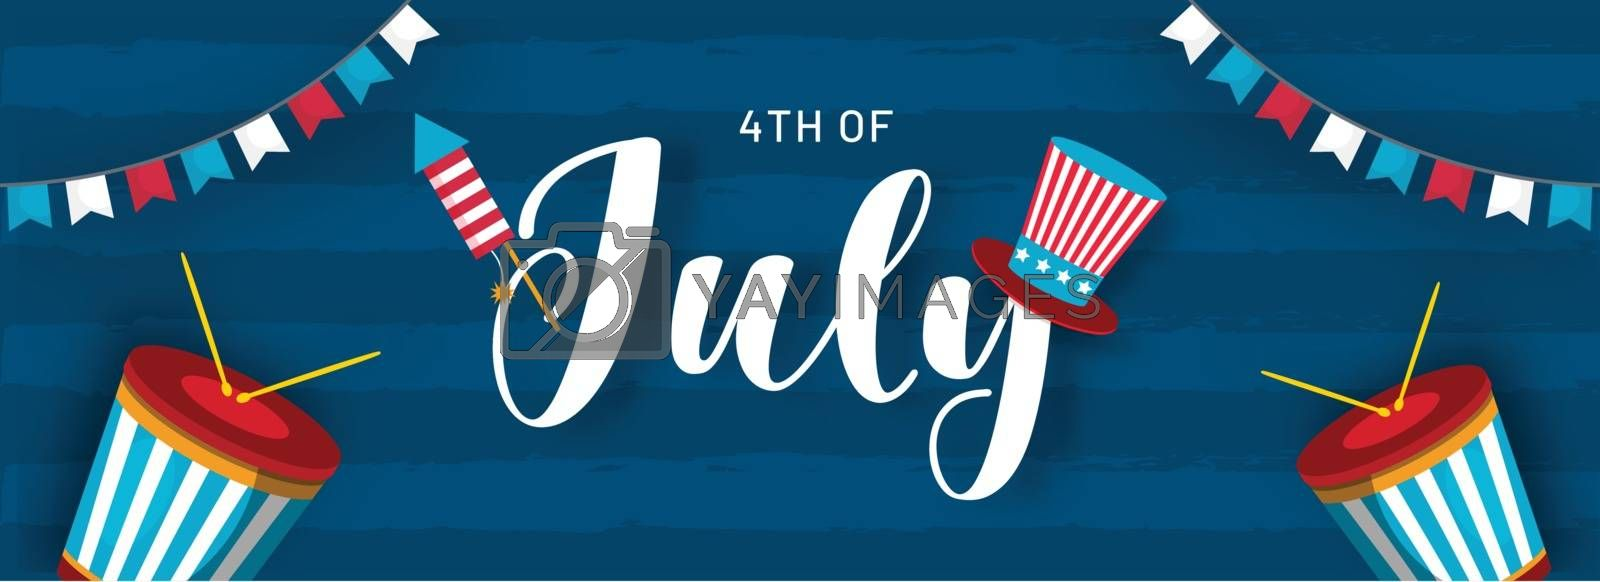 4th Of July header or banner design with illustration of uncle sam hat, drum and bunting flags decorated on blue background.